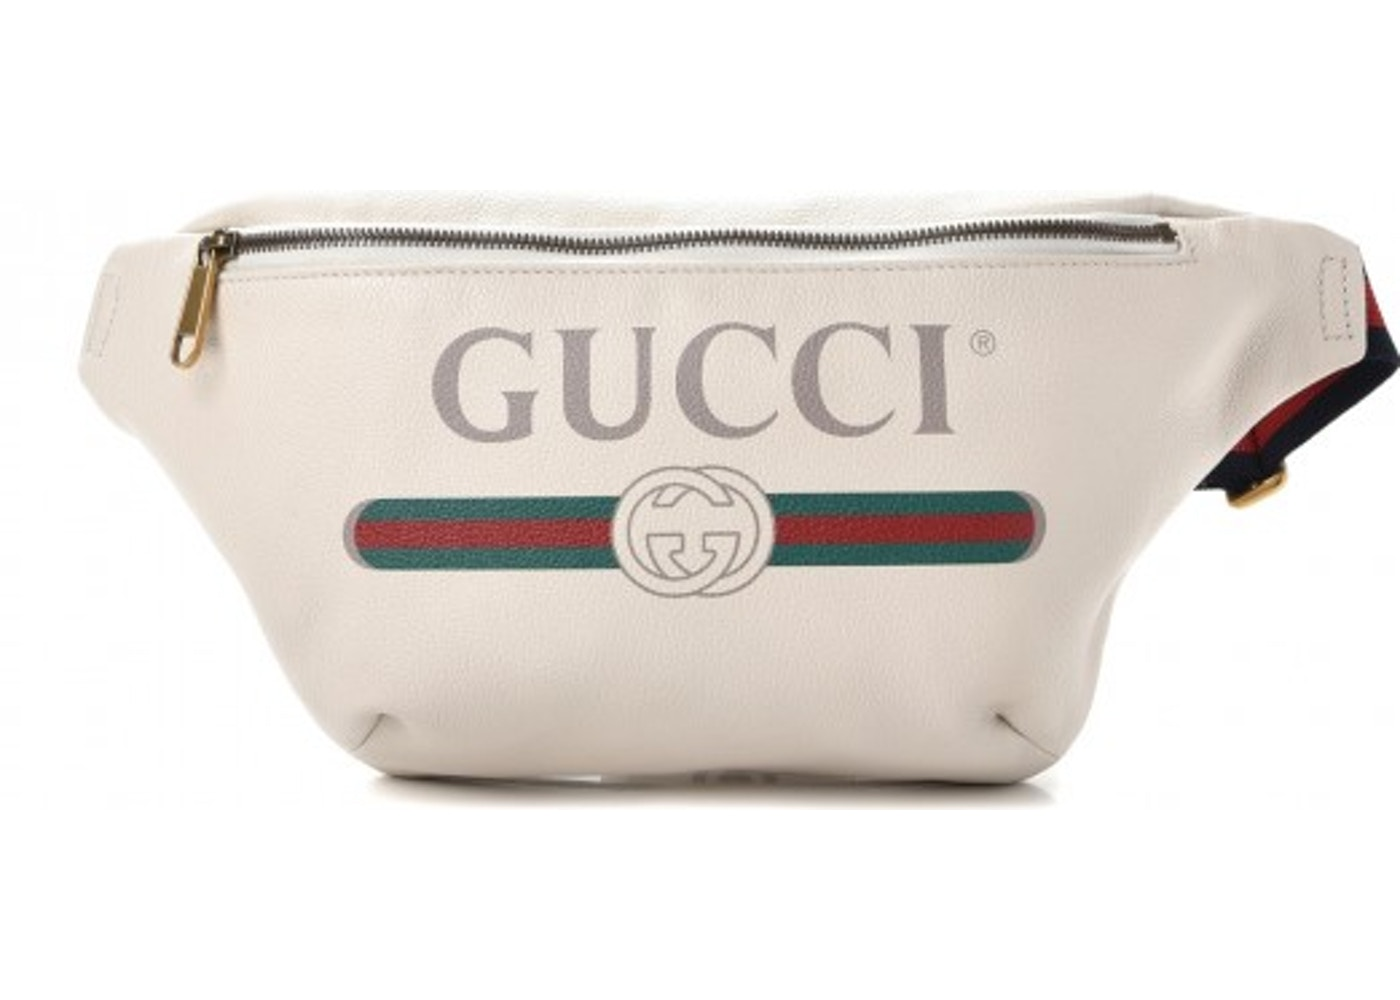 90dbe5184 Gucci Belt Bag Gucci Print Grained White